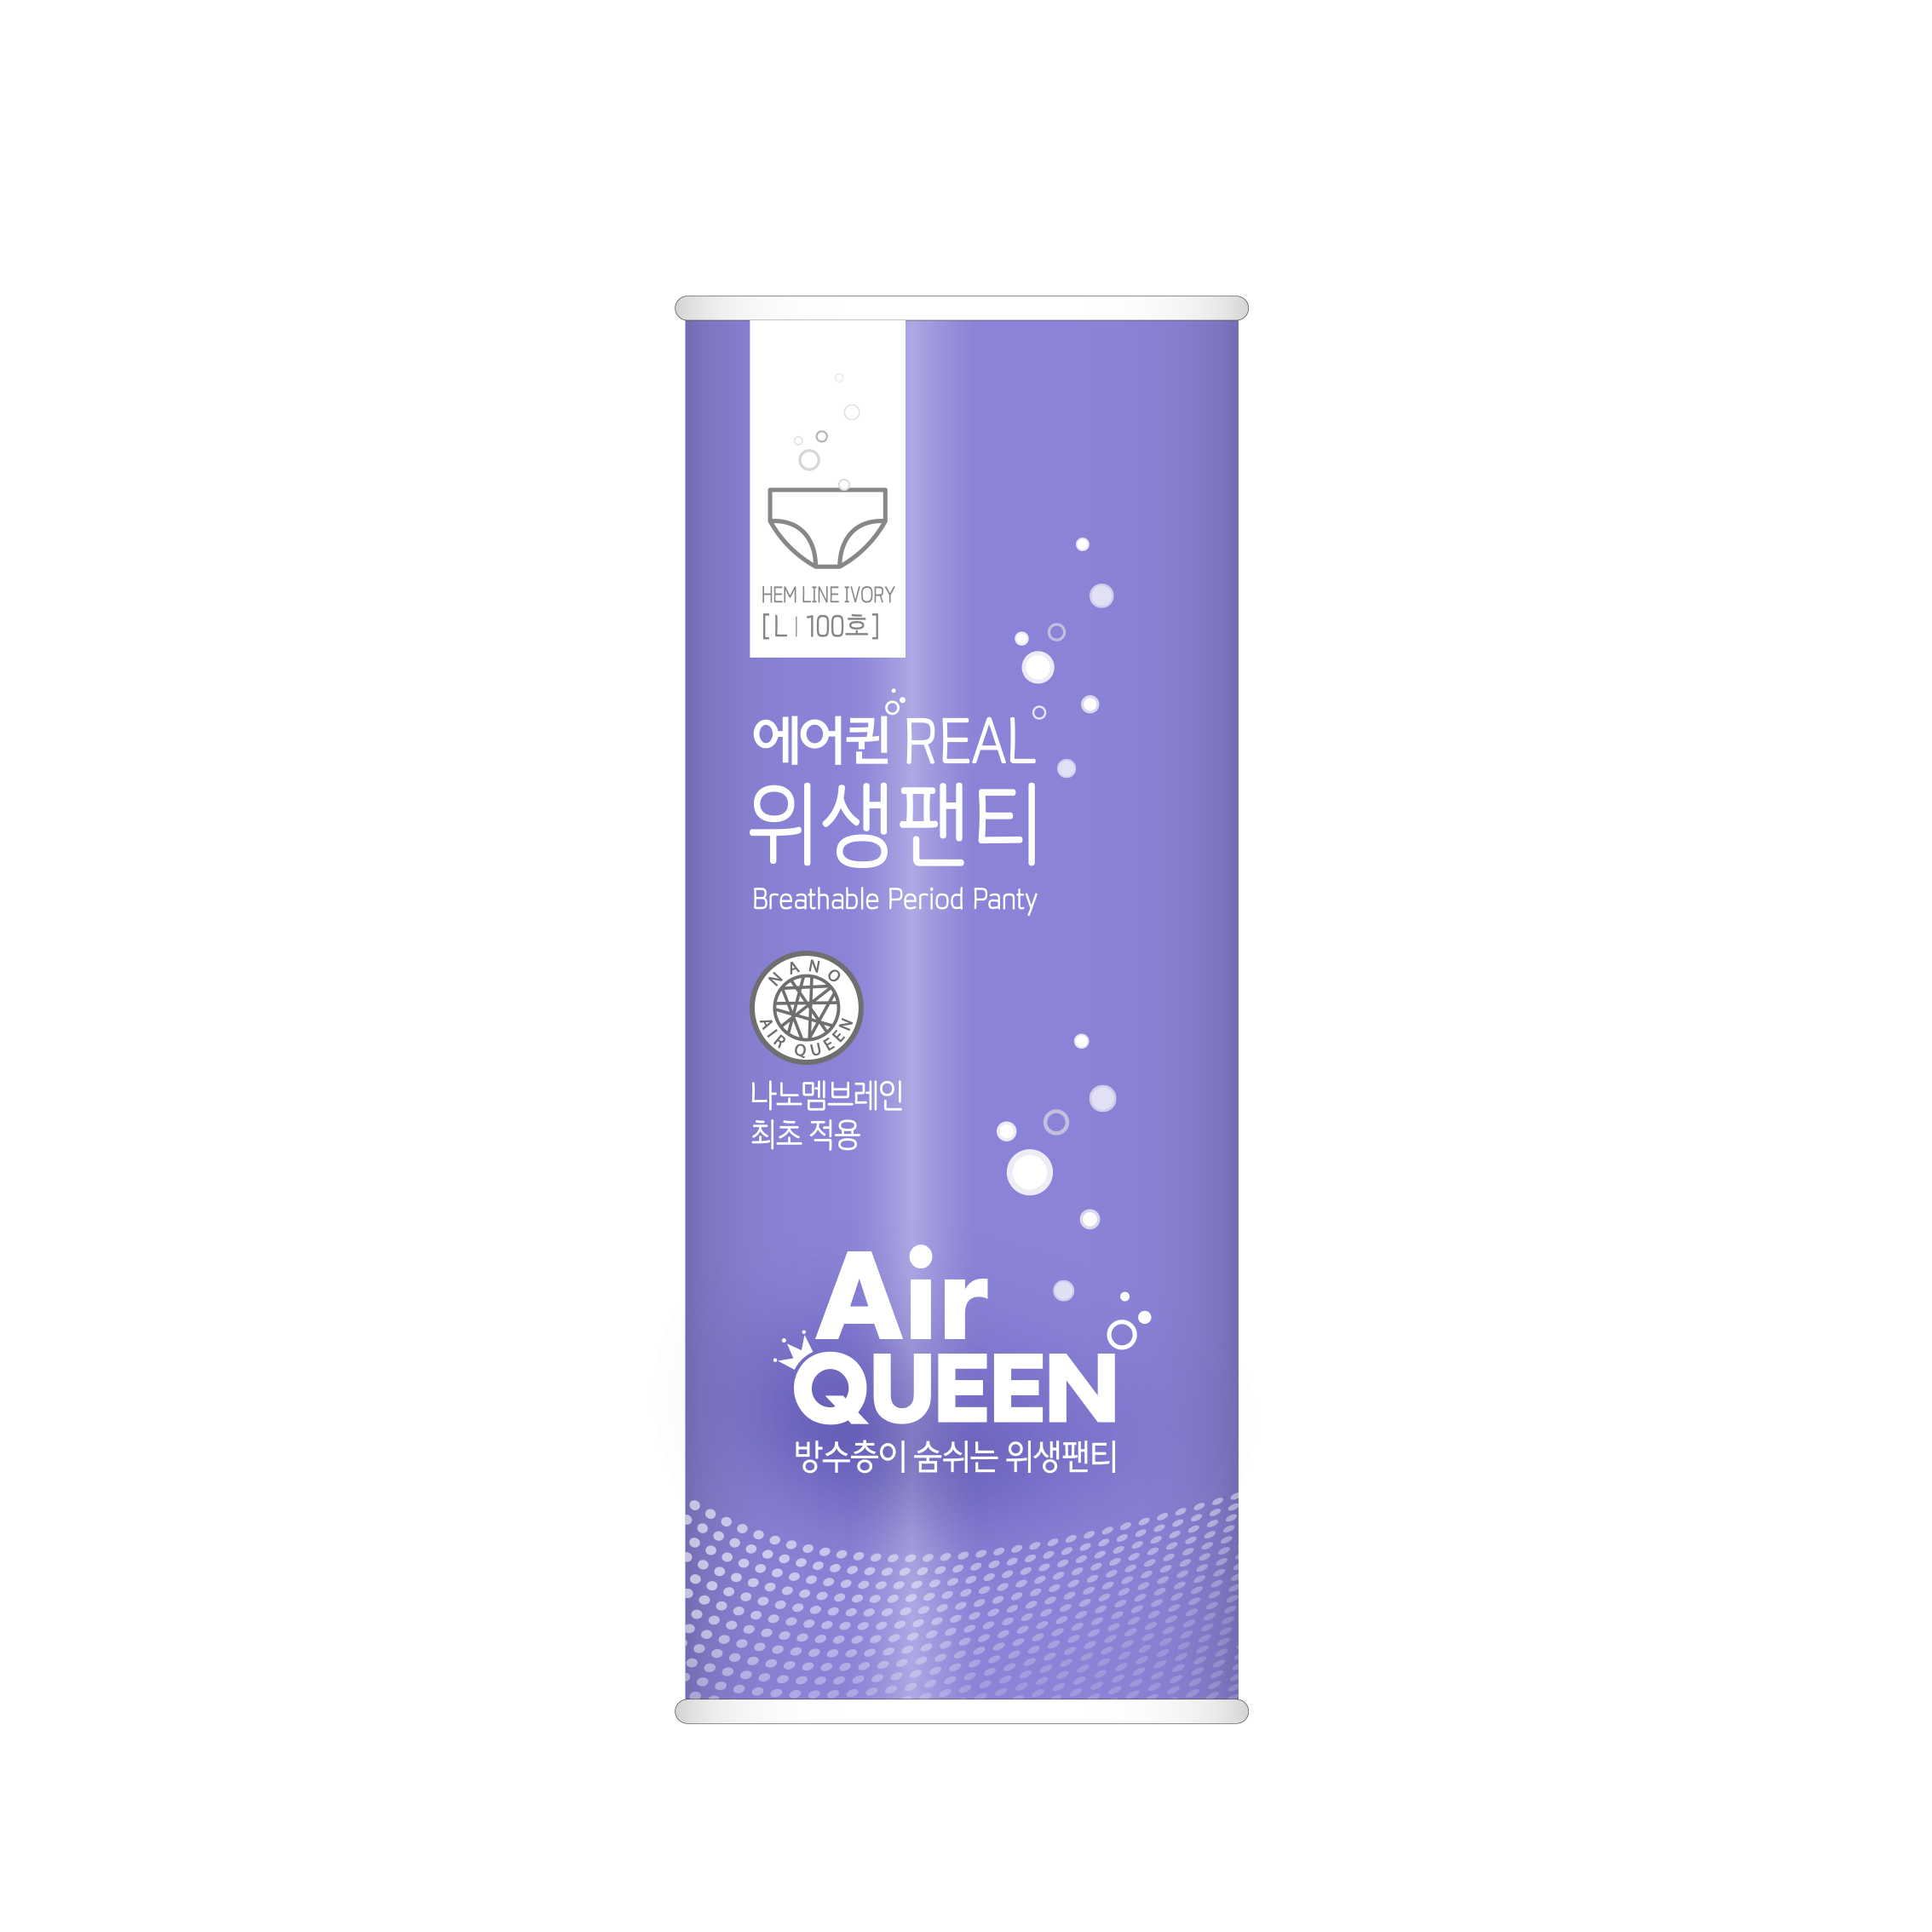 [Air Queen] - Air Queen Feminine Care